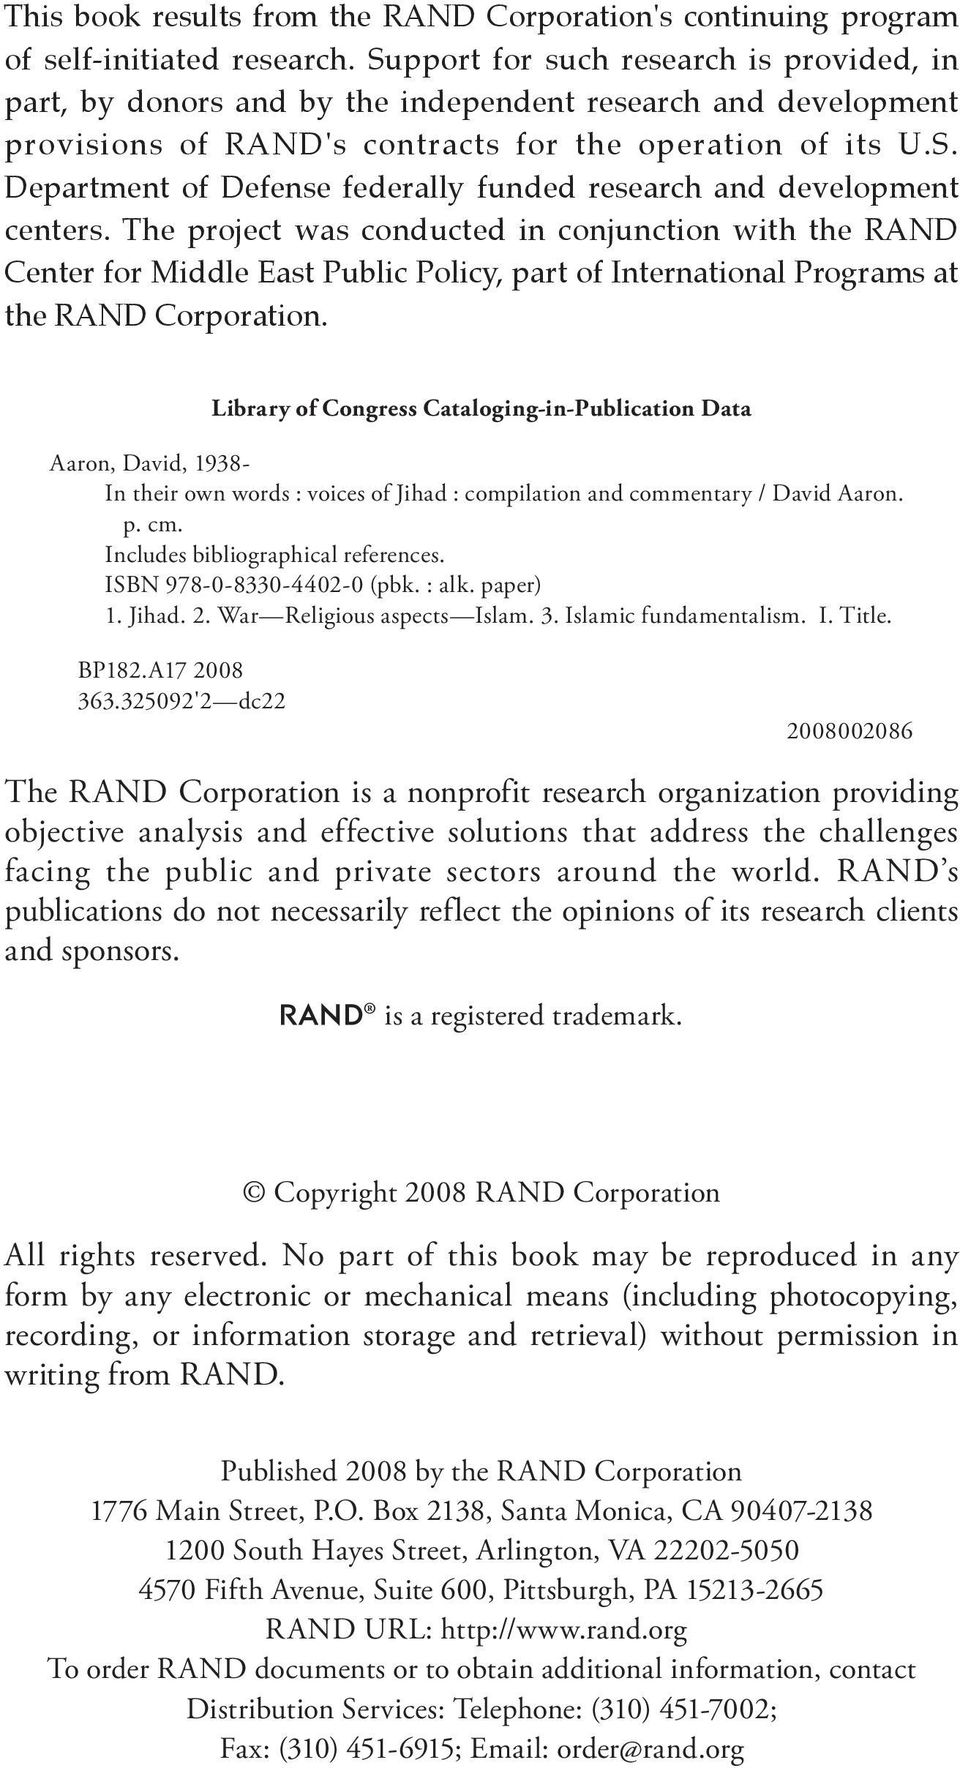 The project was conducted in conjunction with the RAND Center for Middle East Public Policy, part of International Programs at the RAND Corporation.